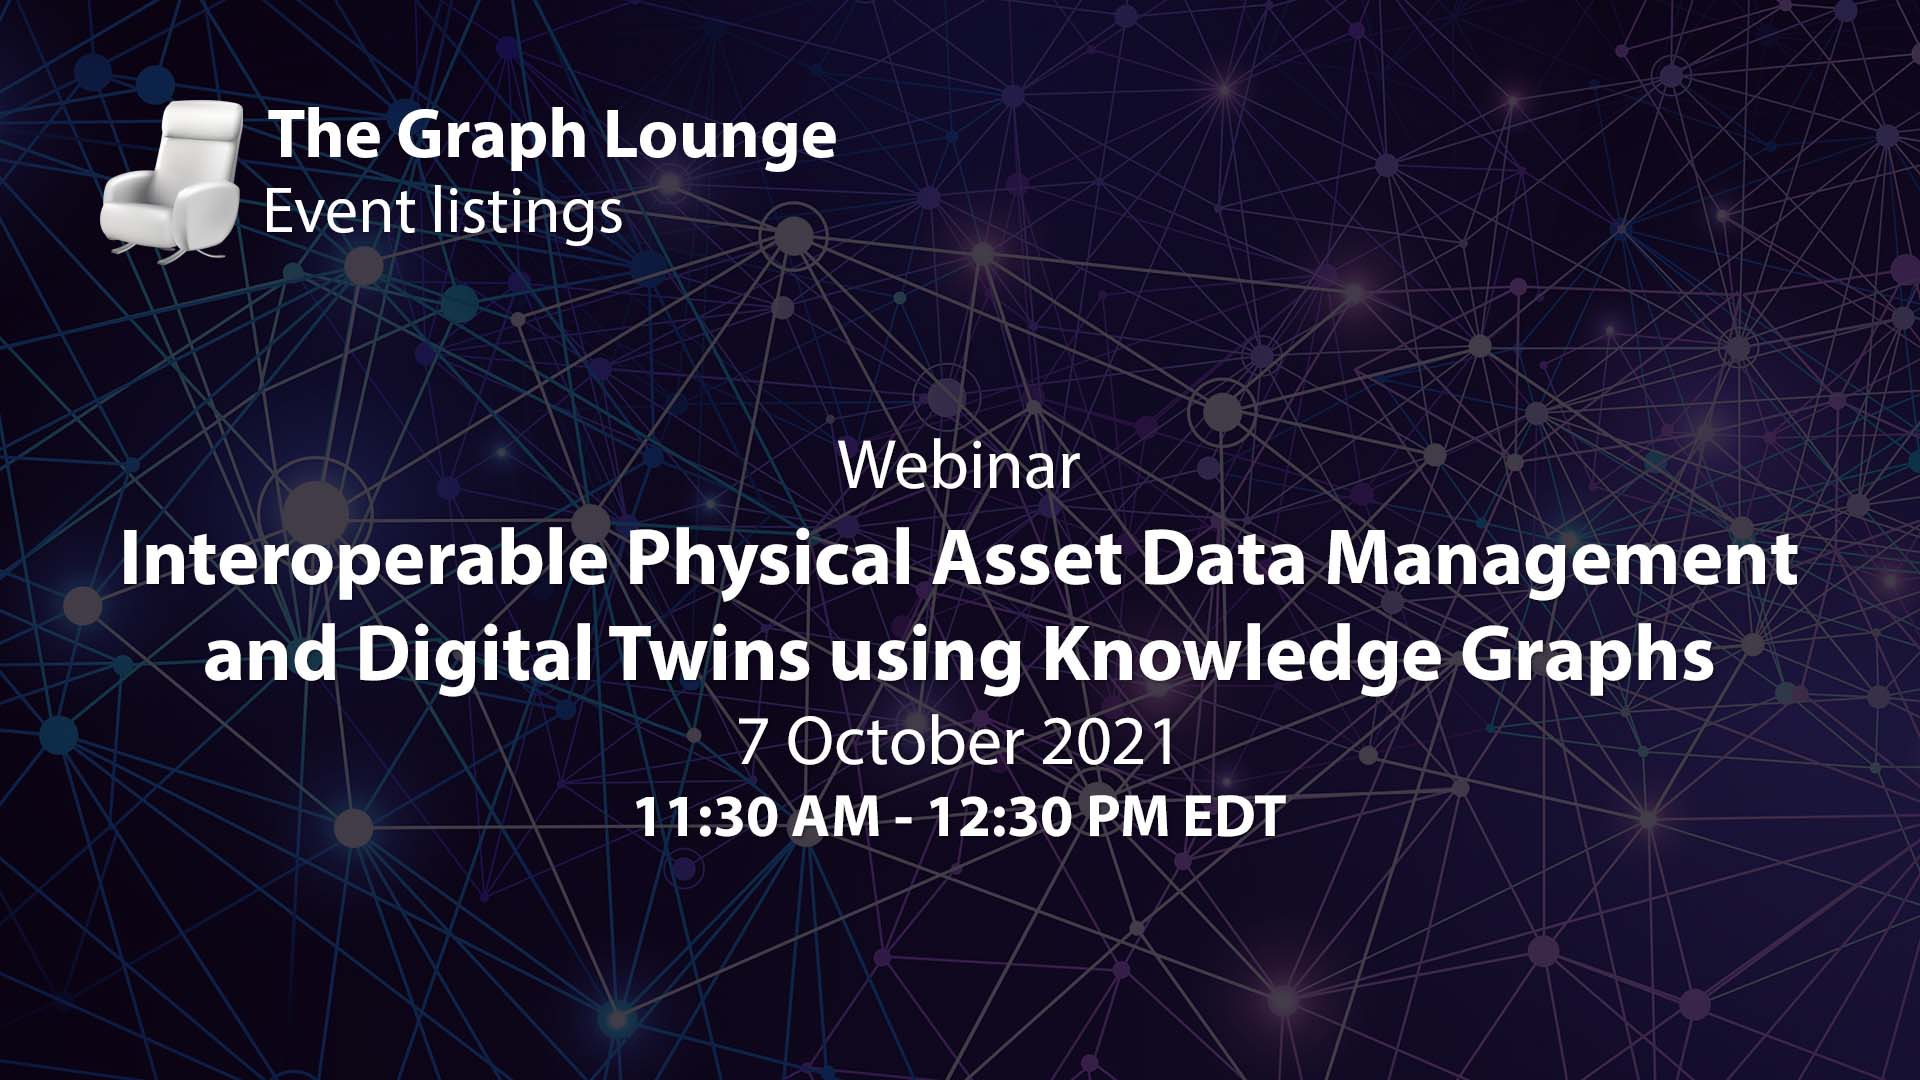 Interoperable Physical Asset Data Management and Digital Twins using Knowledge Graphs